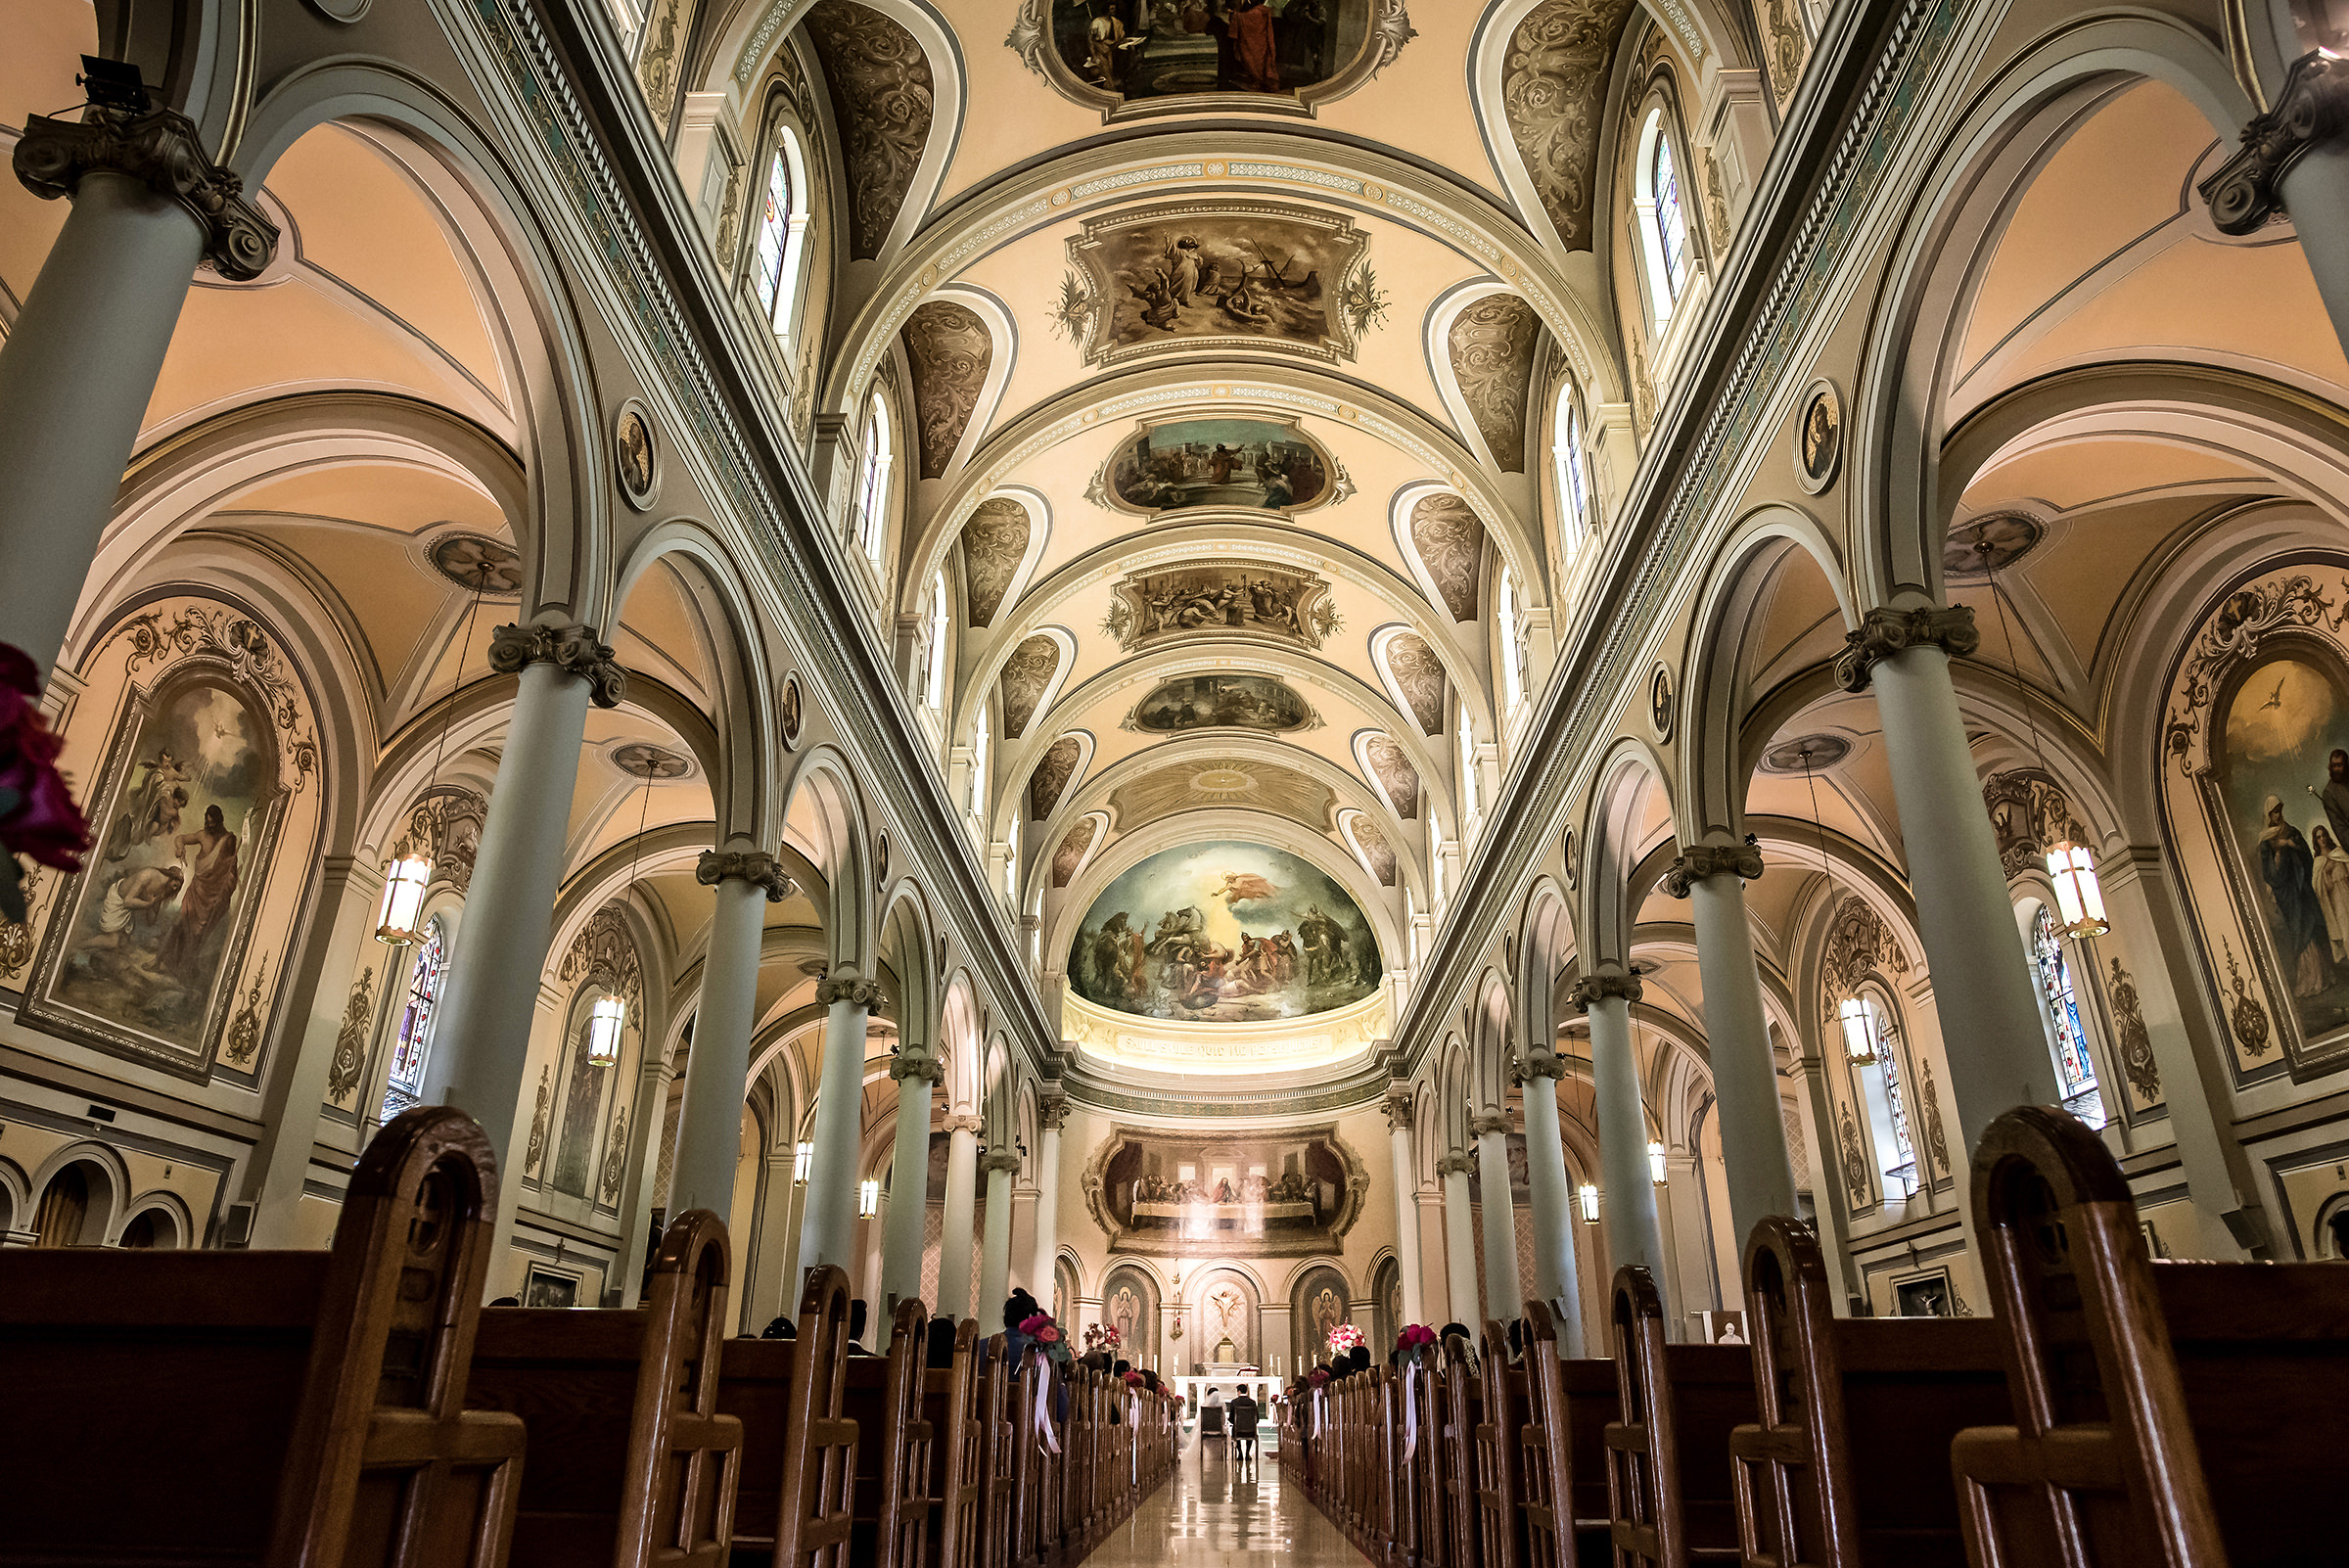 Ornate cathedral wedding ceremony - photo by David & Sherry Photography